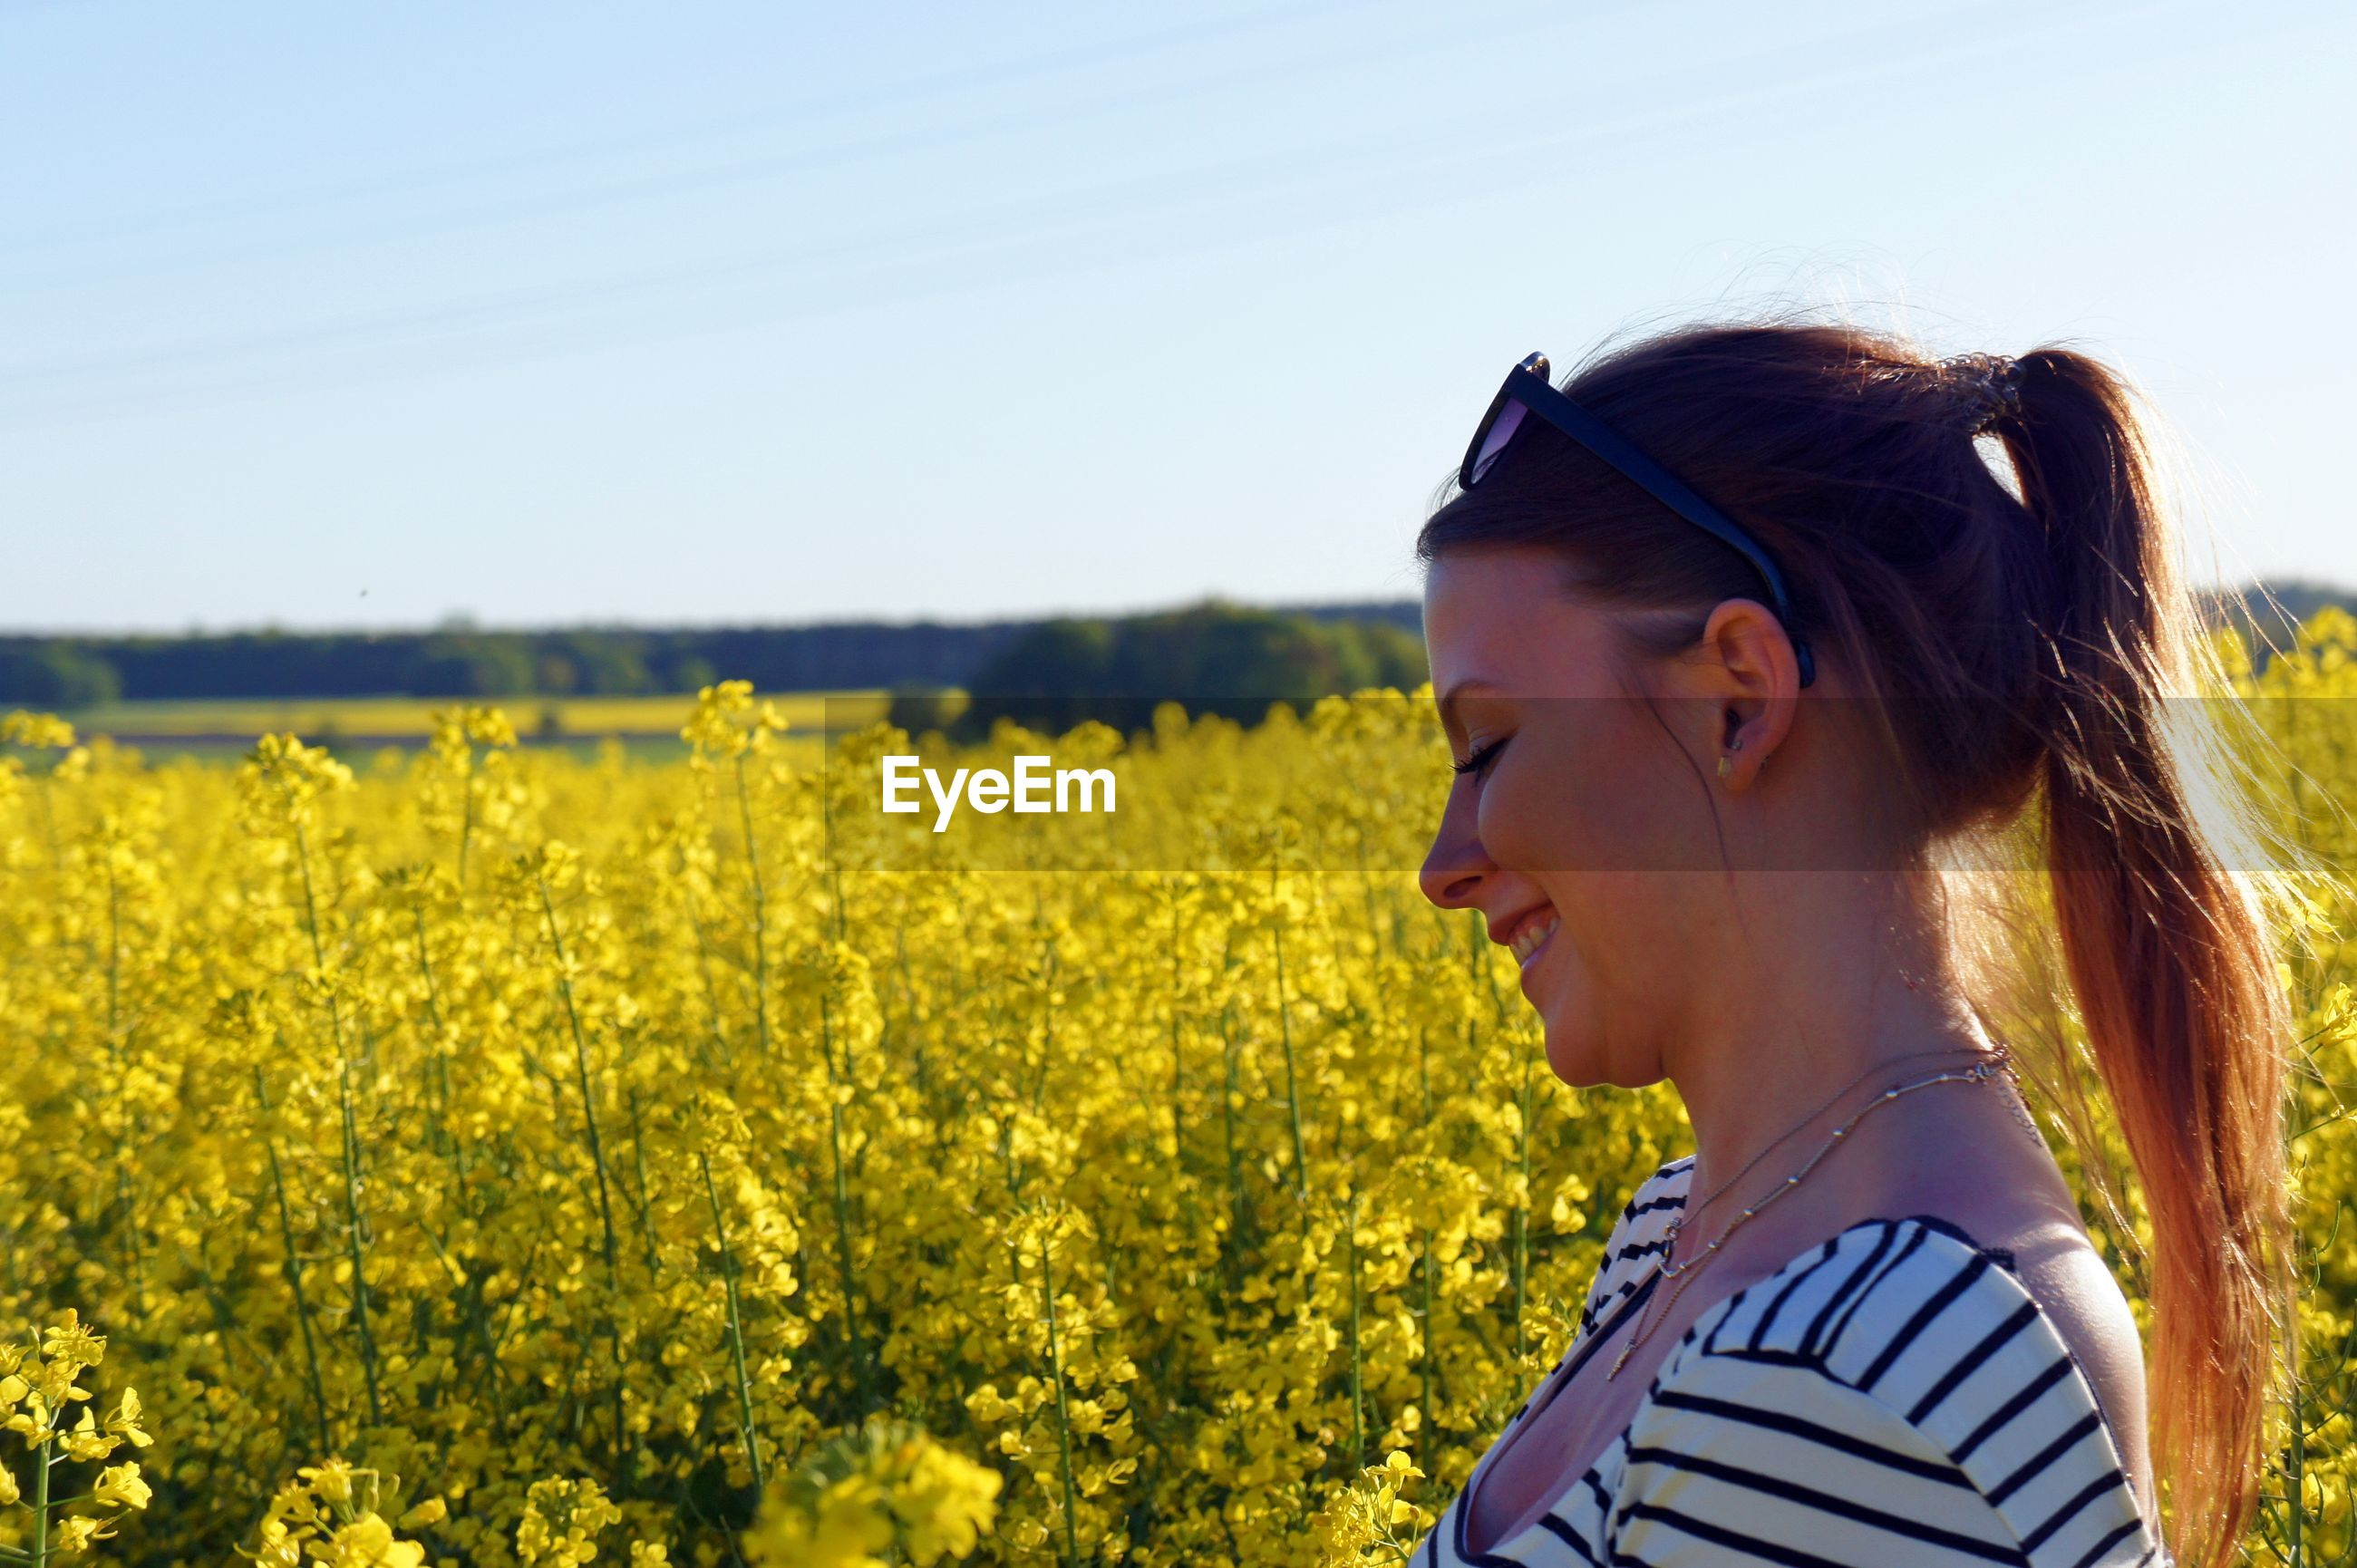 Side view of smiling woman standing amidst yellow flowering plants on field against sky during sunny day